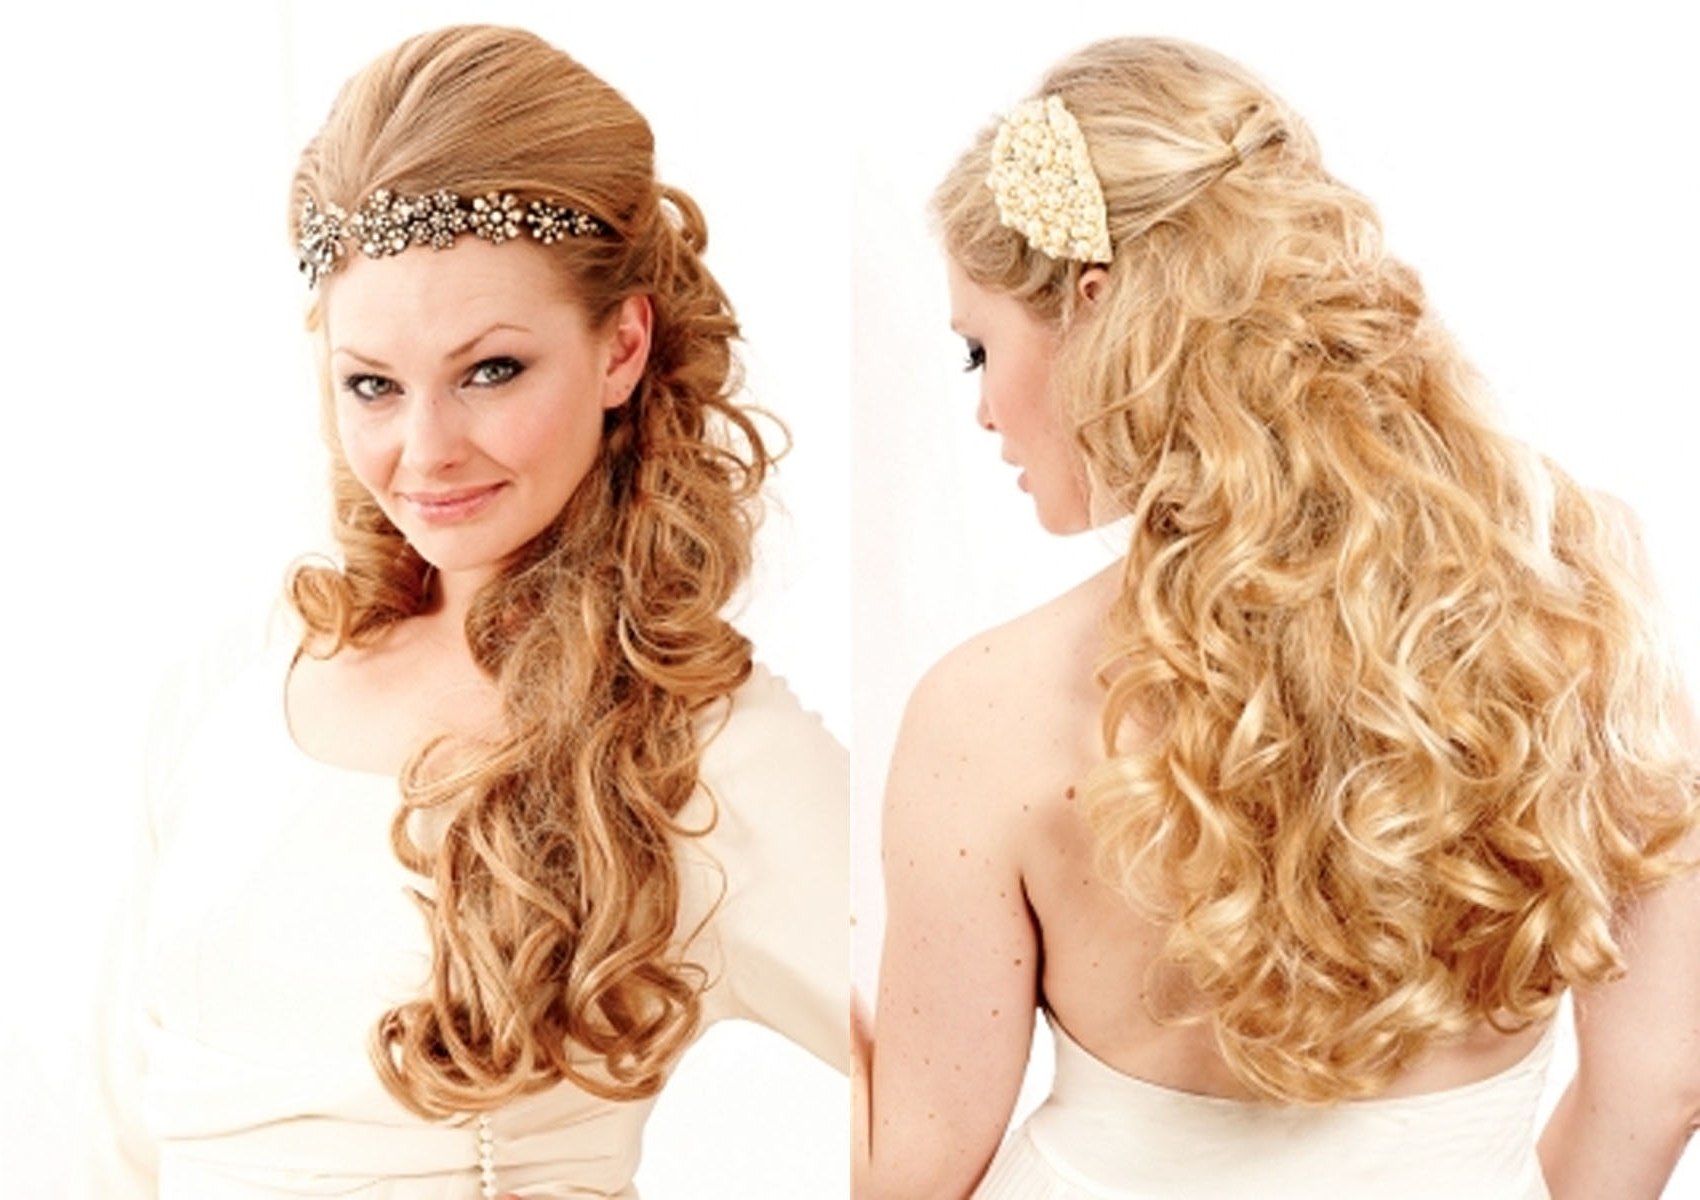 Sweet Down Hairstyle For Your Prom Night (View 11 of 15)